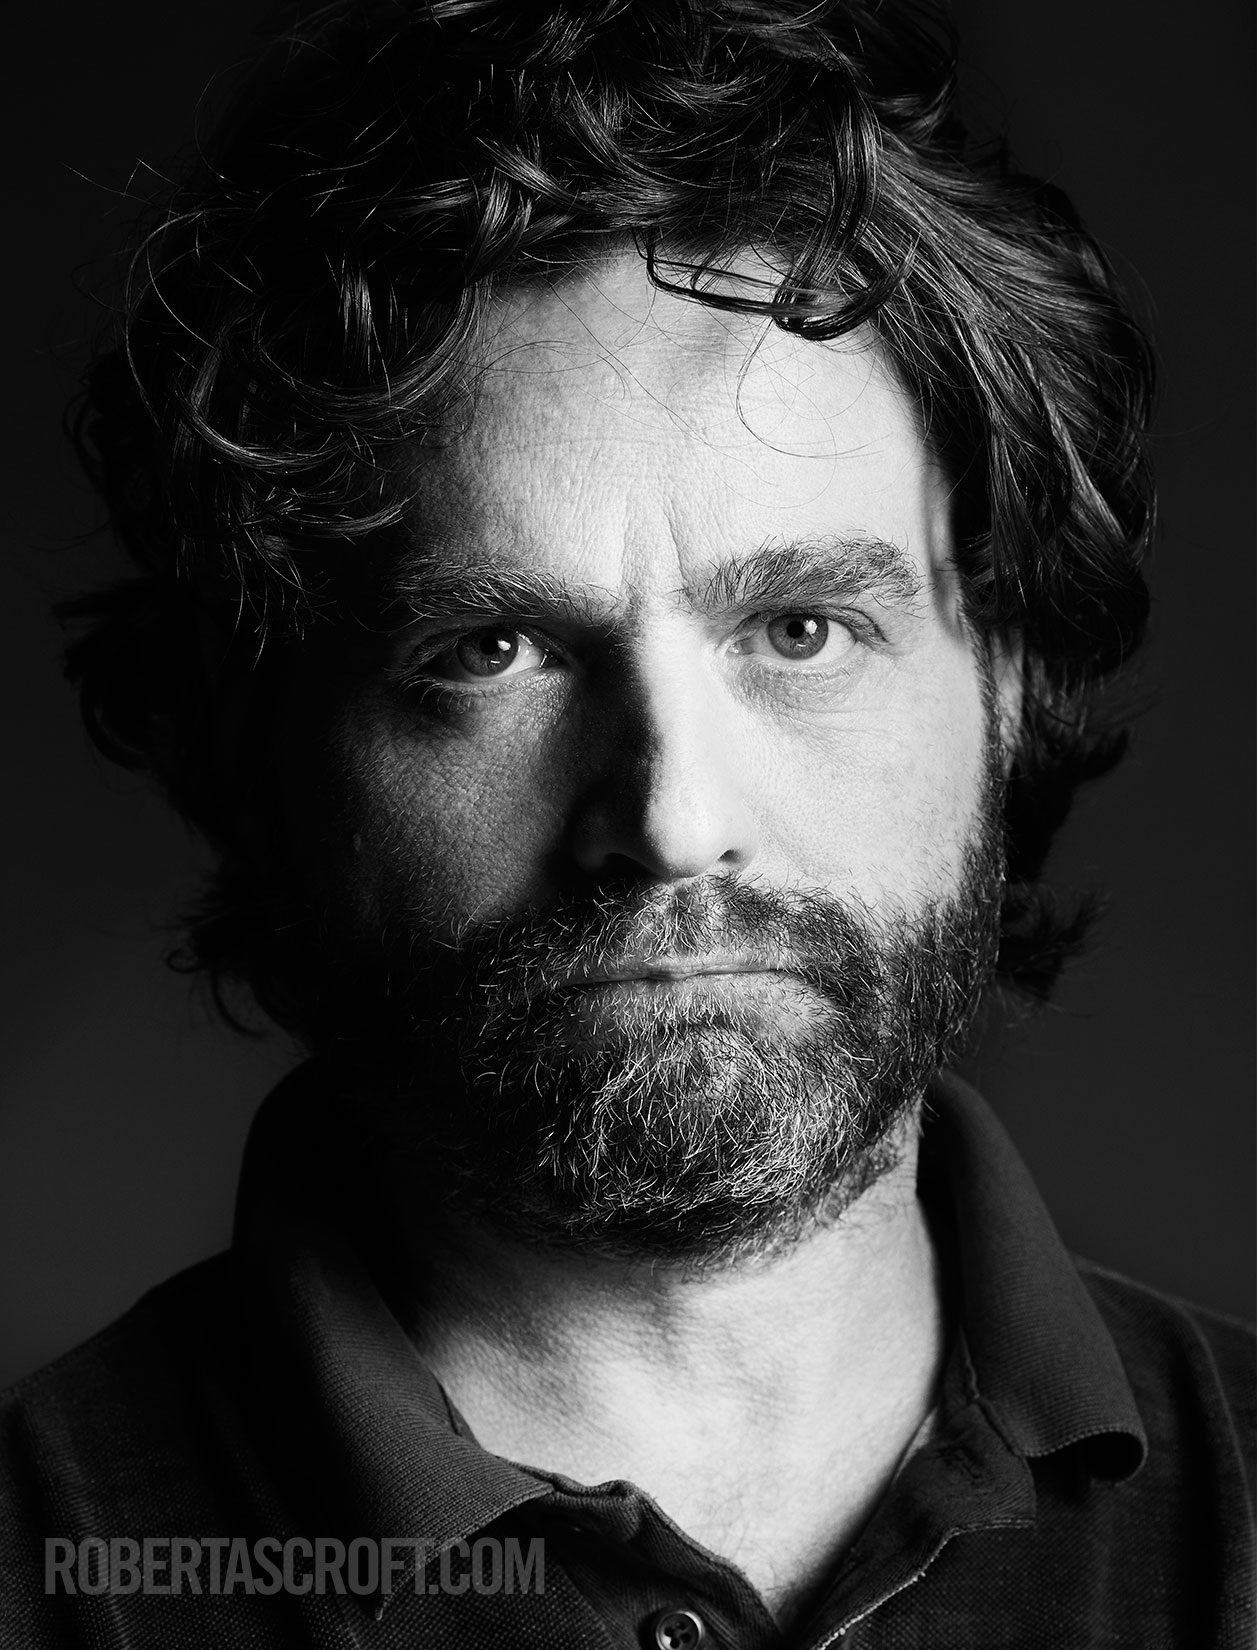 Zach-Galifianakis-by-Robert-Ascroft-04